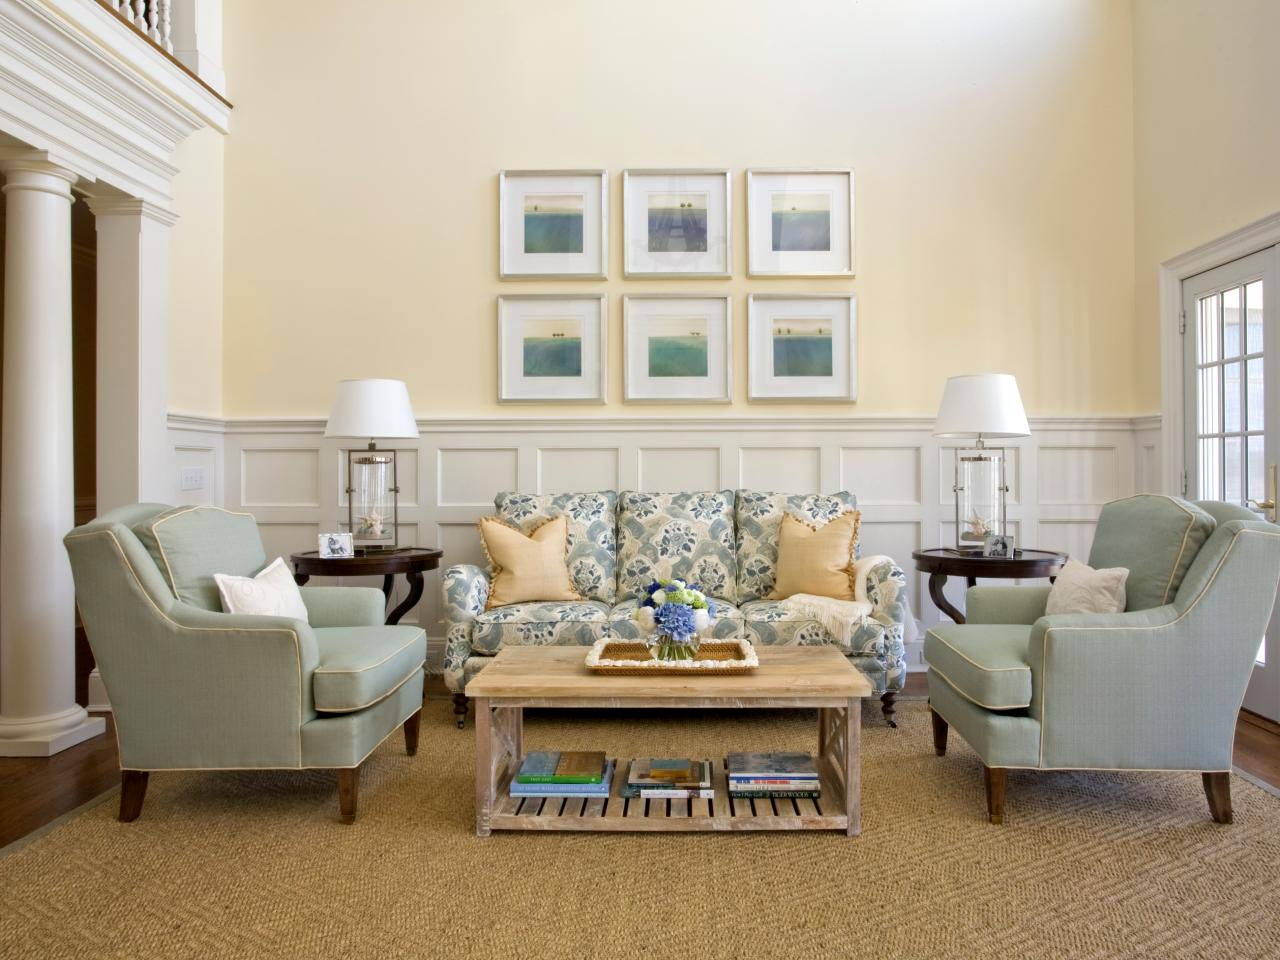 Traditional living room with pastel blue and yellow furnishings